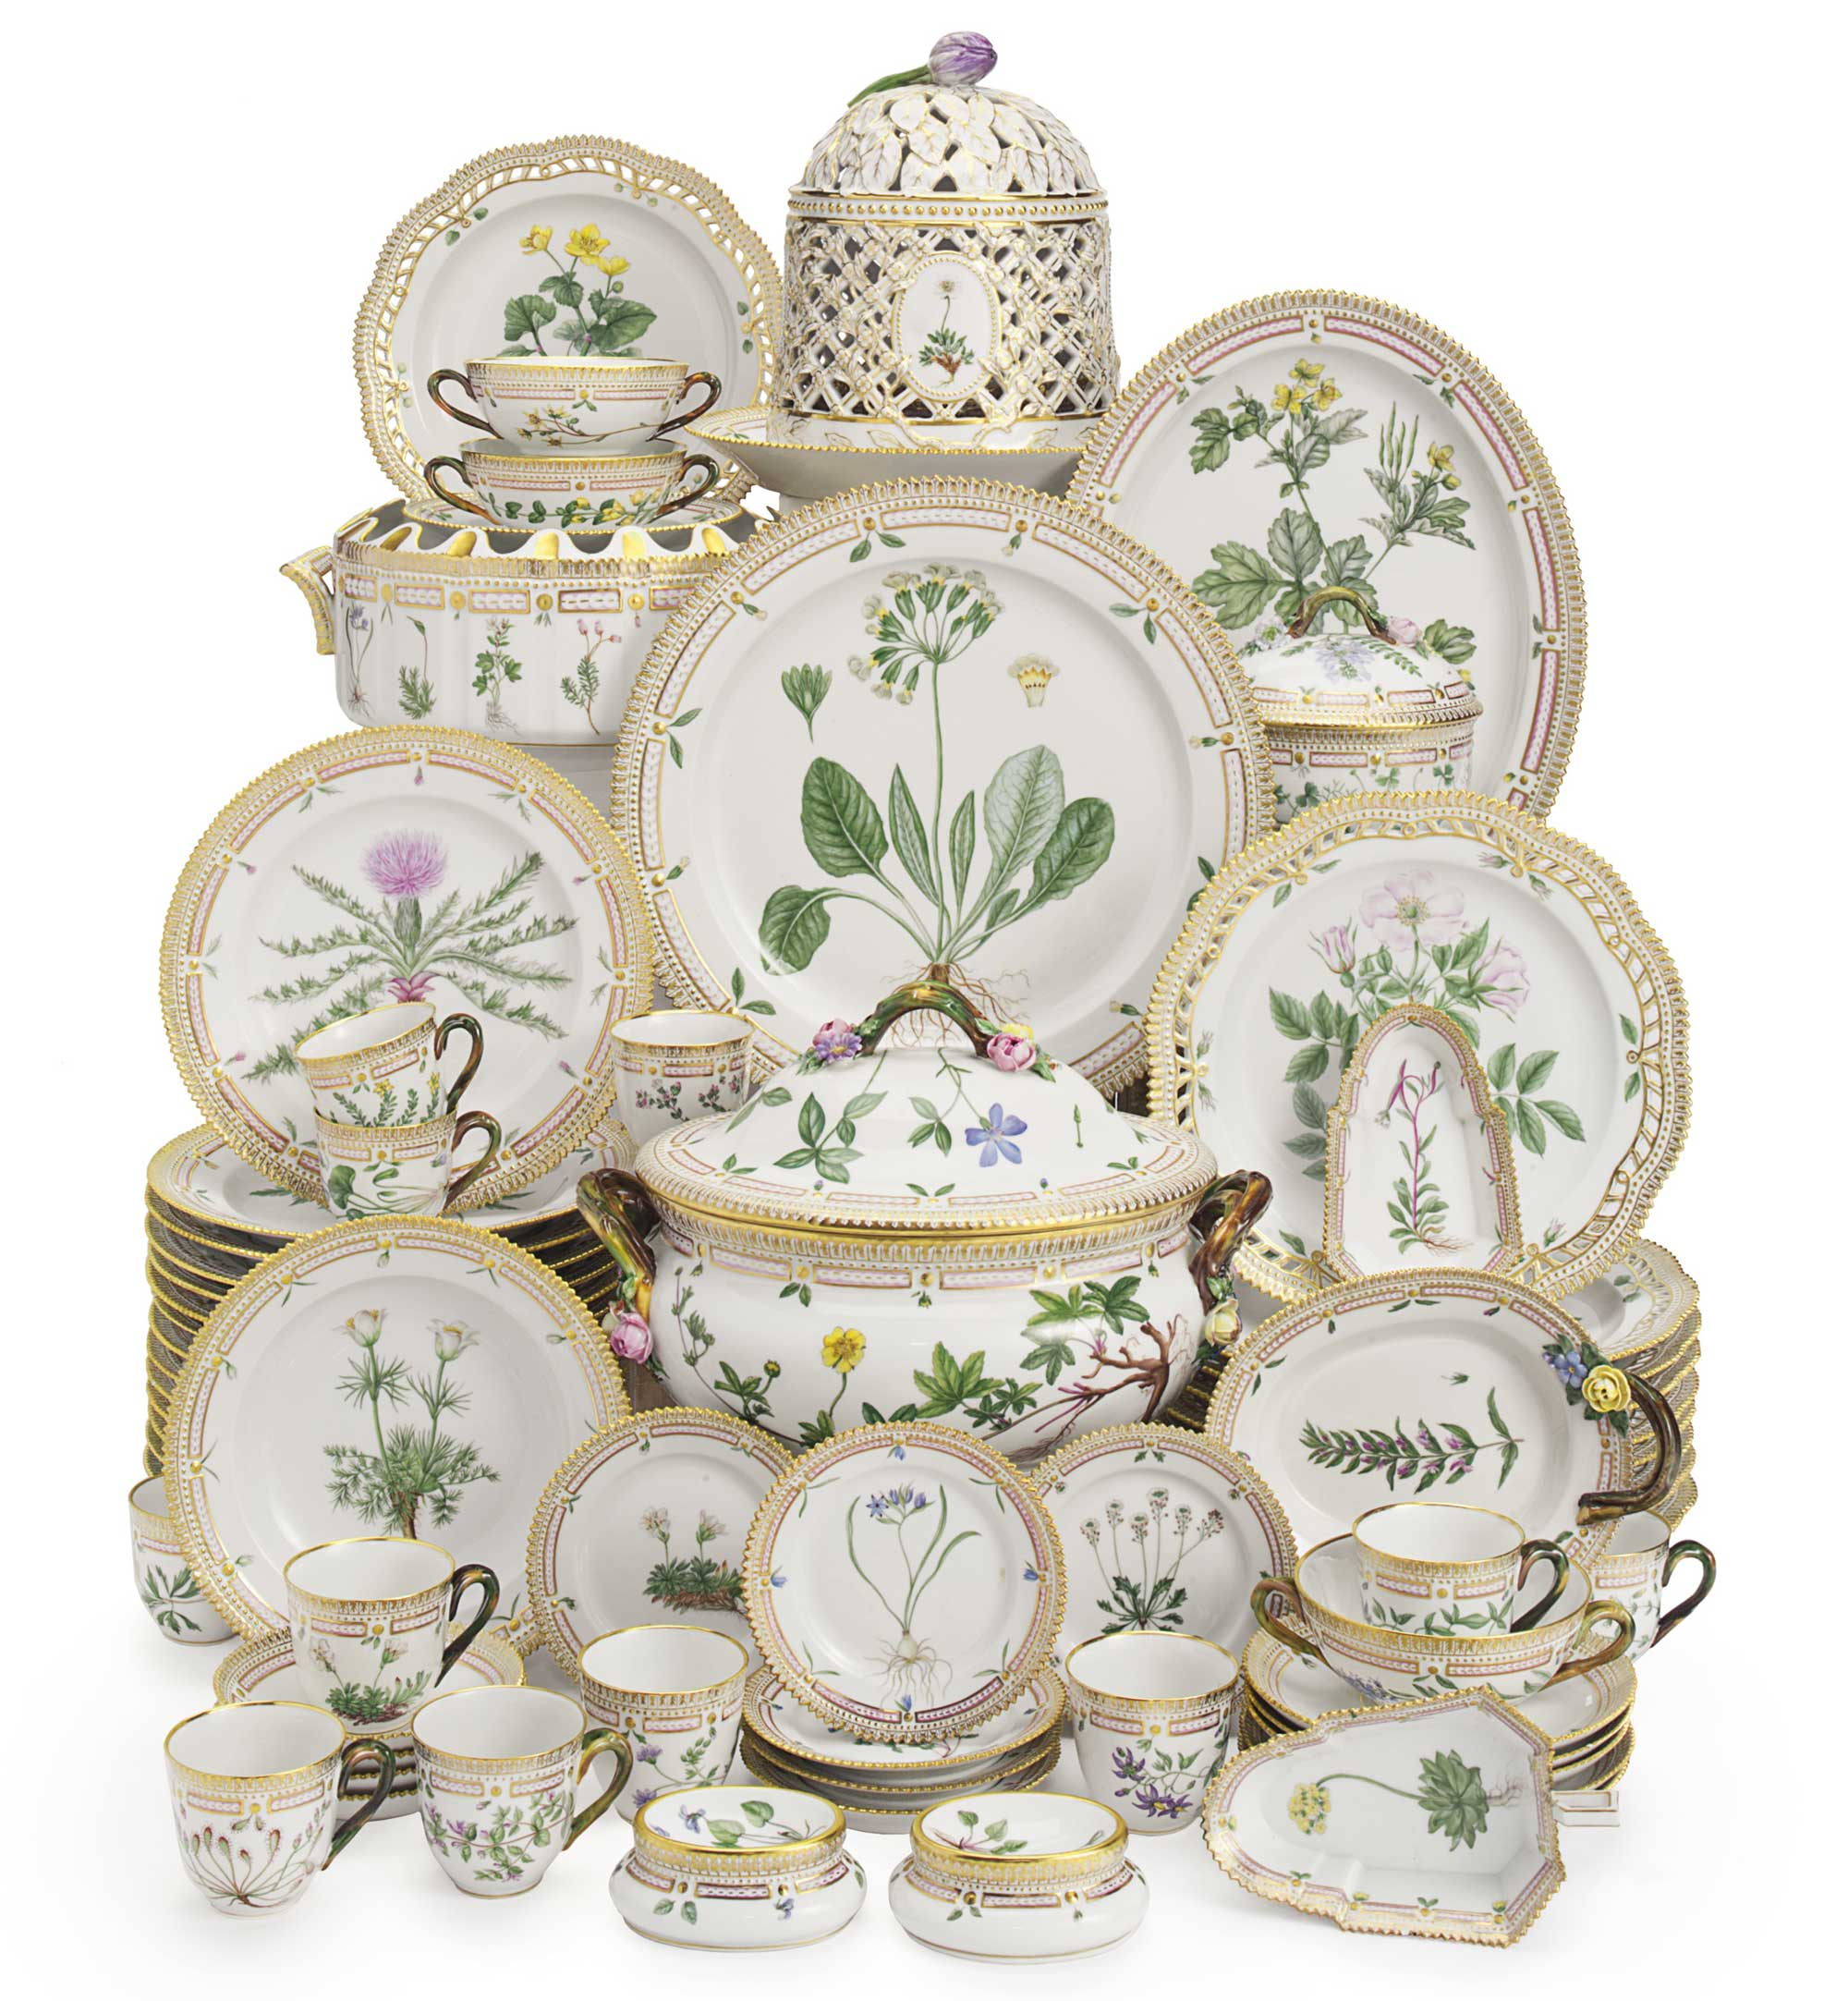 <b>A Royal Copenhagen Porcelain 'Flora Danica' Part Dinner Service</b><br/>20th Century, Blue Wave and Green Printed Crown Marks, Pattern No. 20